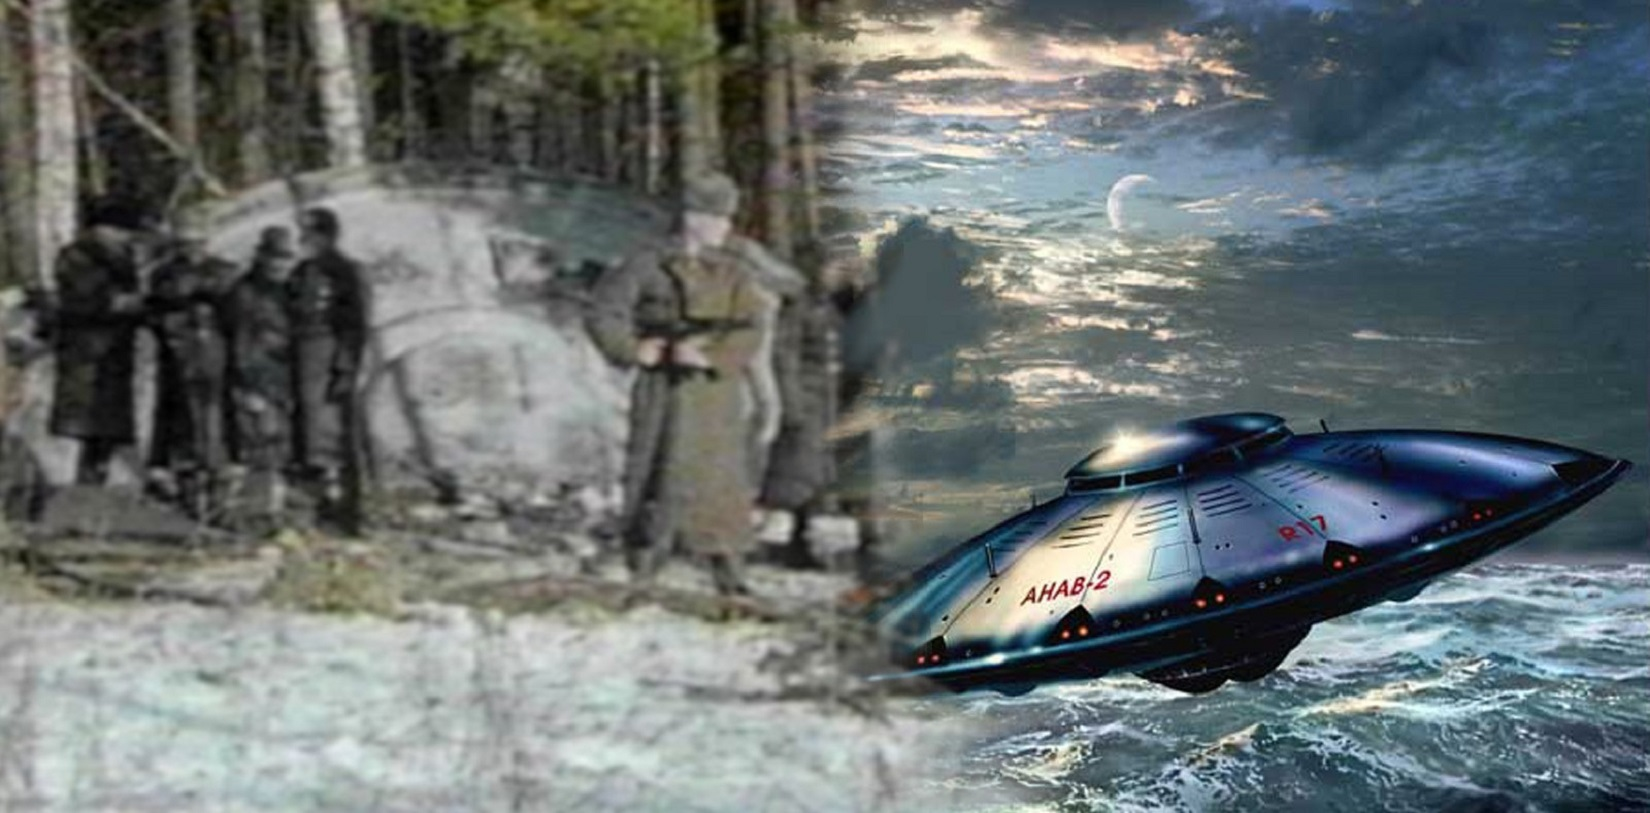 The Cold War Soviet UFO Recovery Missions